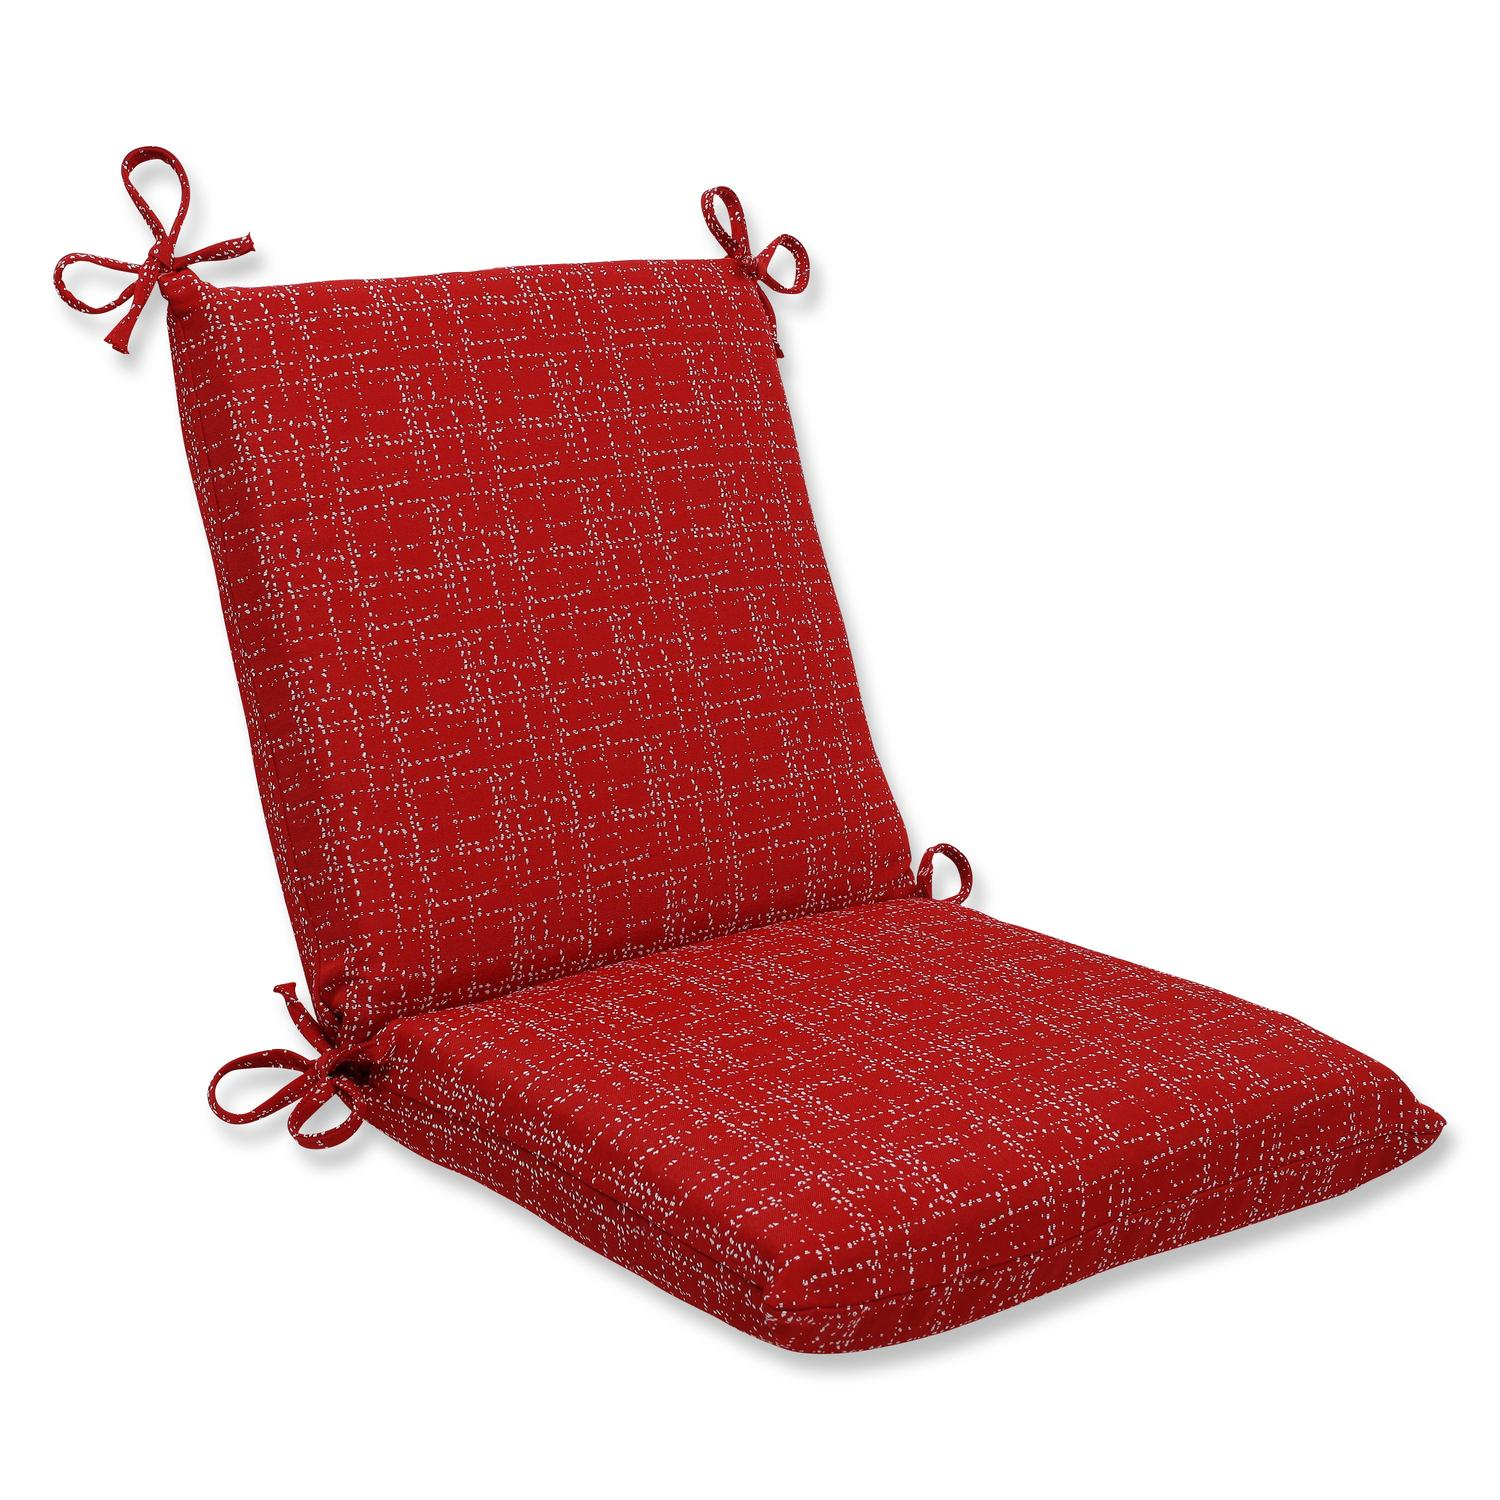 "36.5"" Bella-Dura Conran Red Dashed Lines Outdoor Patio Squared Chair Cushion"